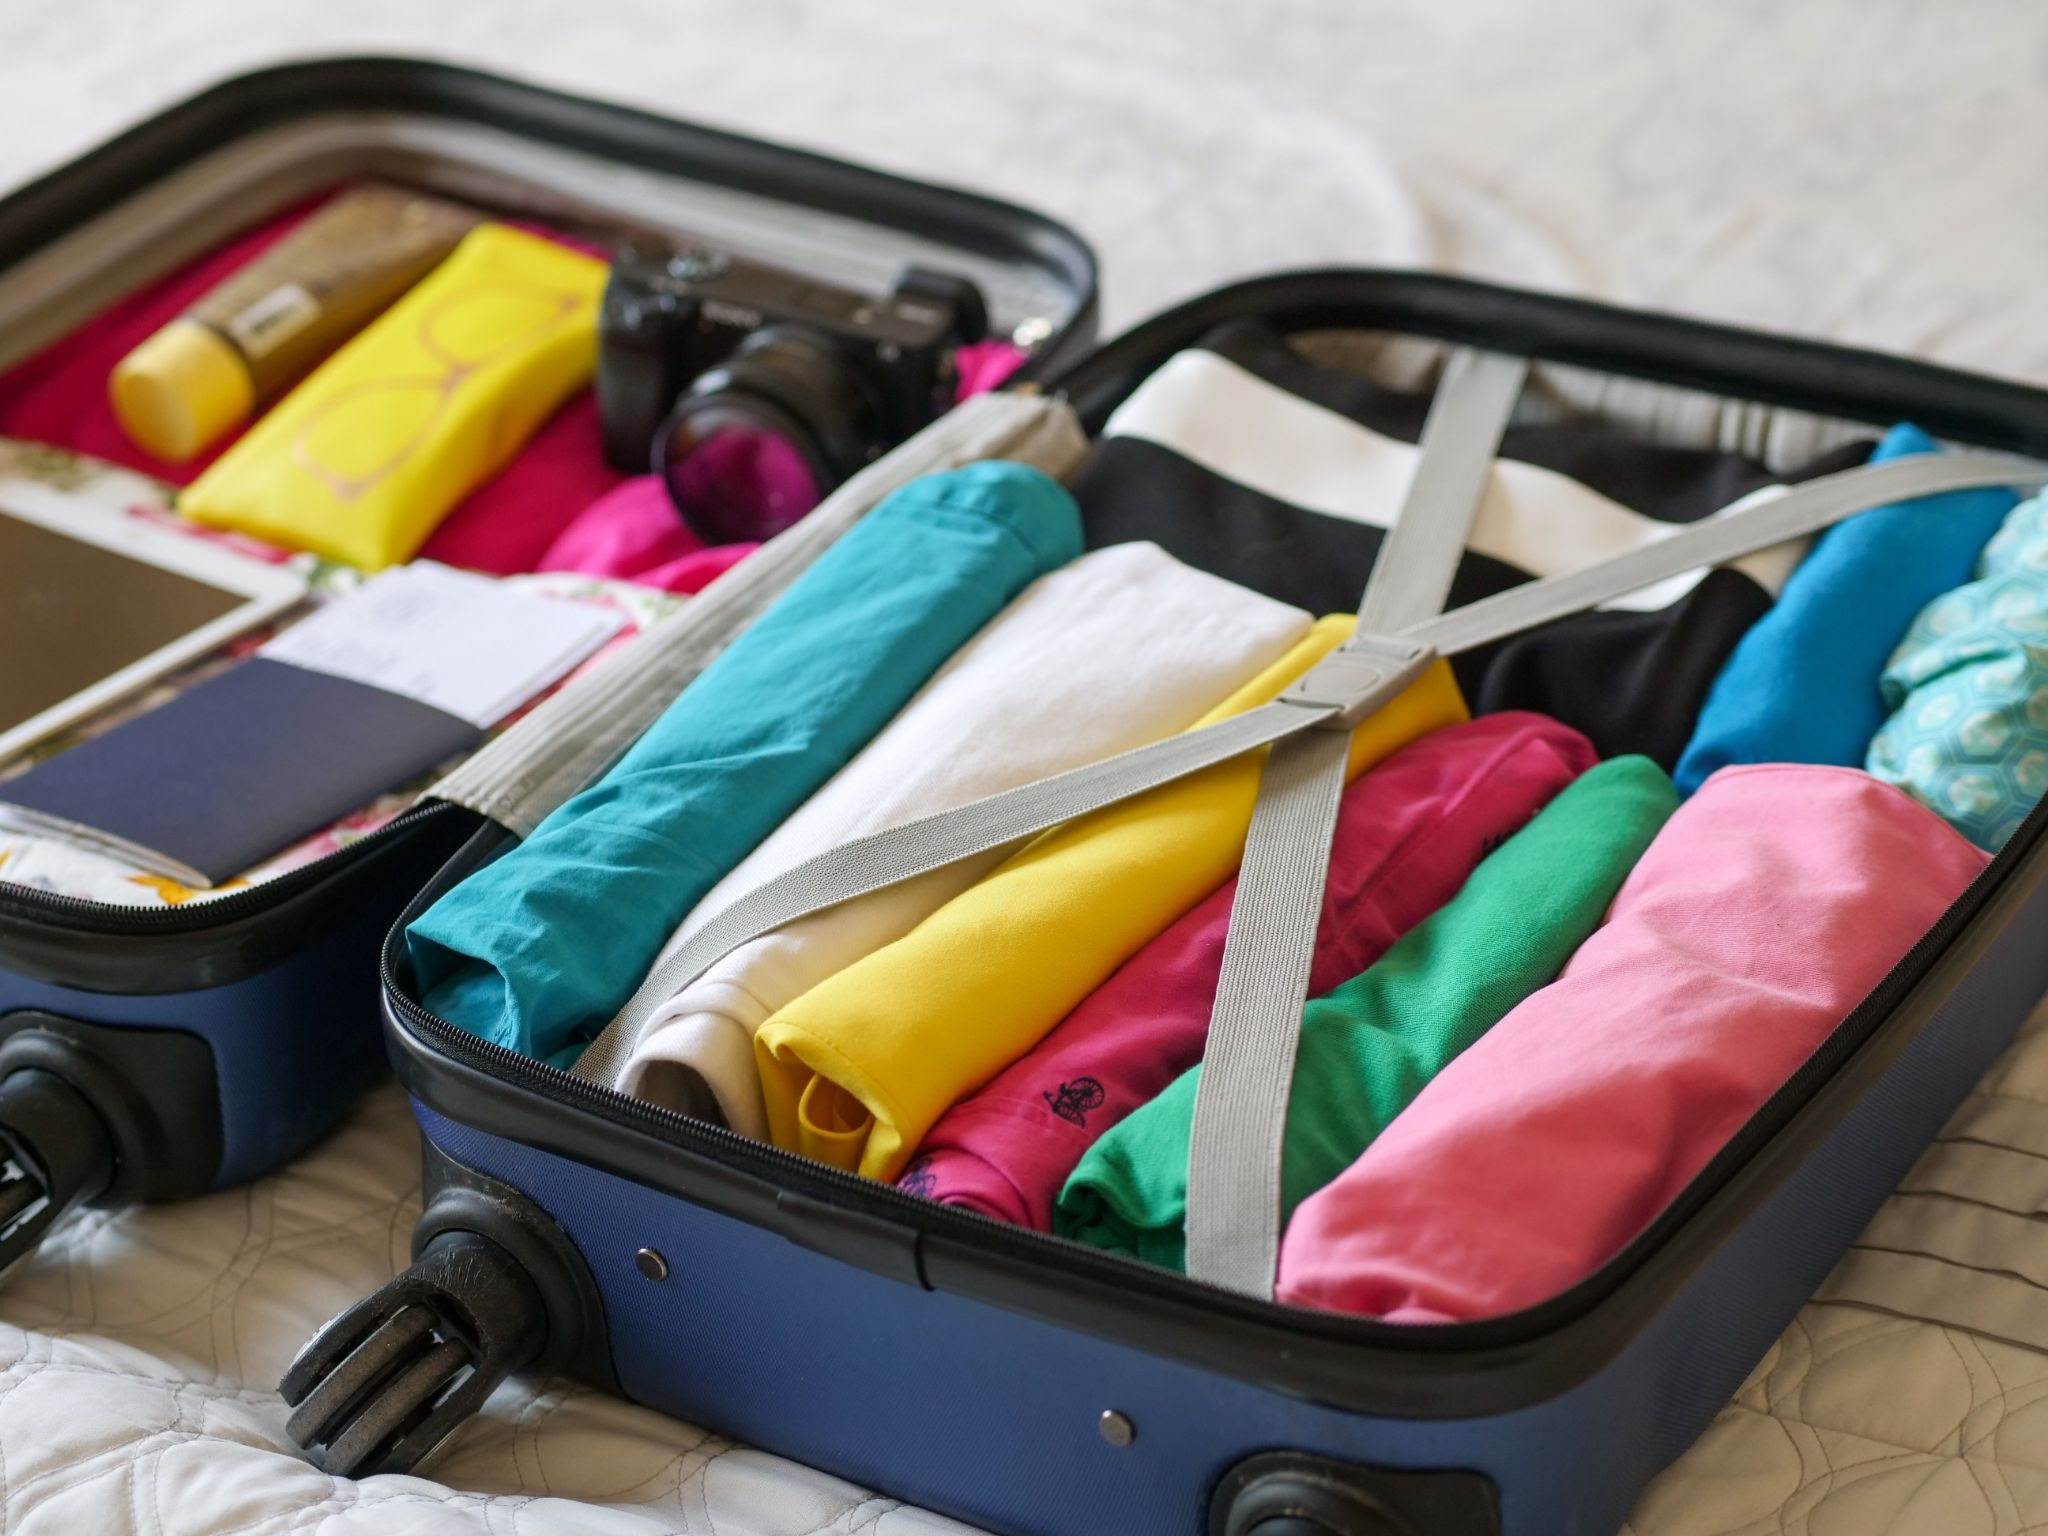 folding cloths while travel